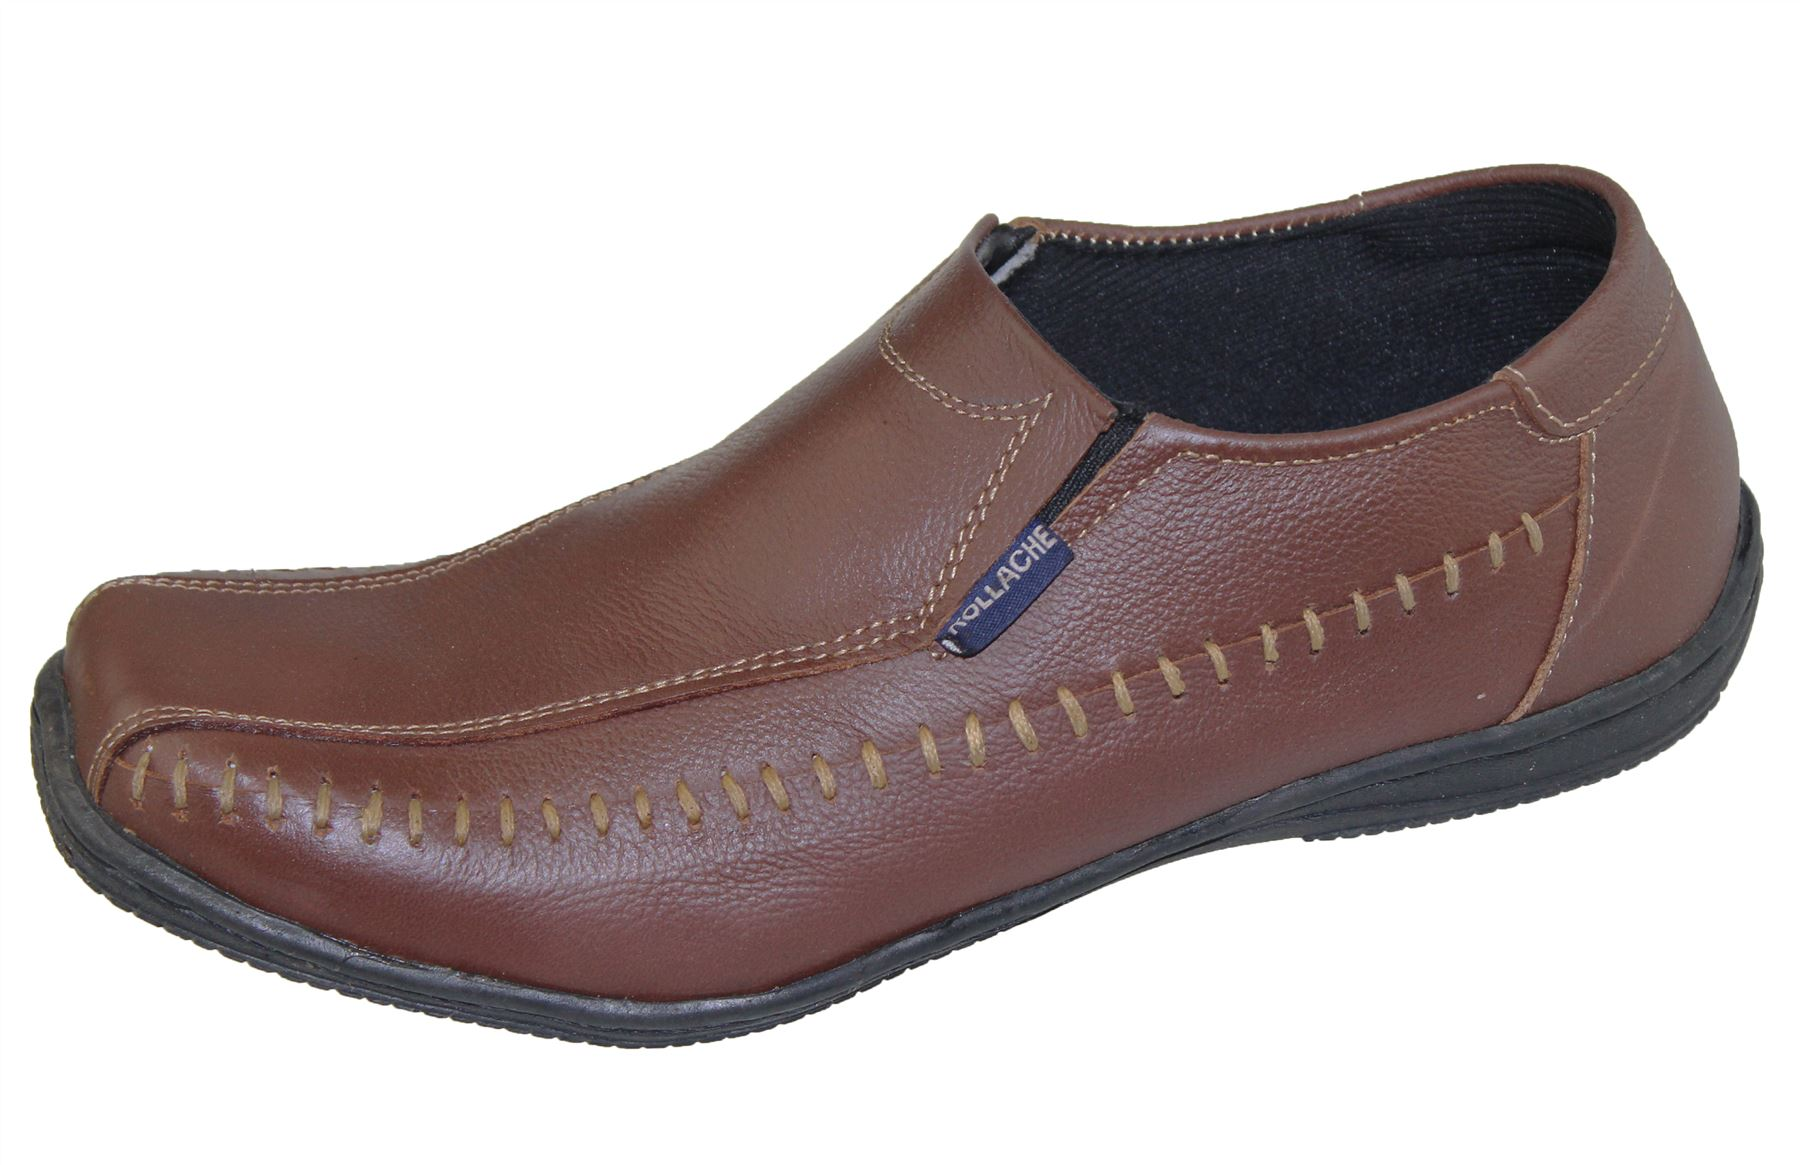 Uomo Mocassini Barca Deck MOCASSIN WALKING Comfort Mocassini Guida Scarpe Casual